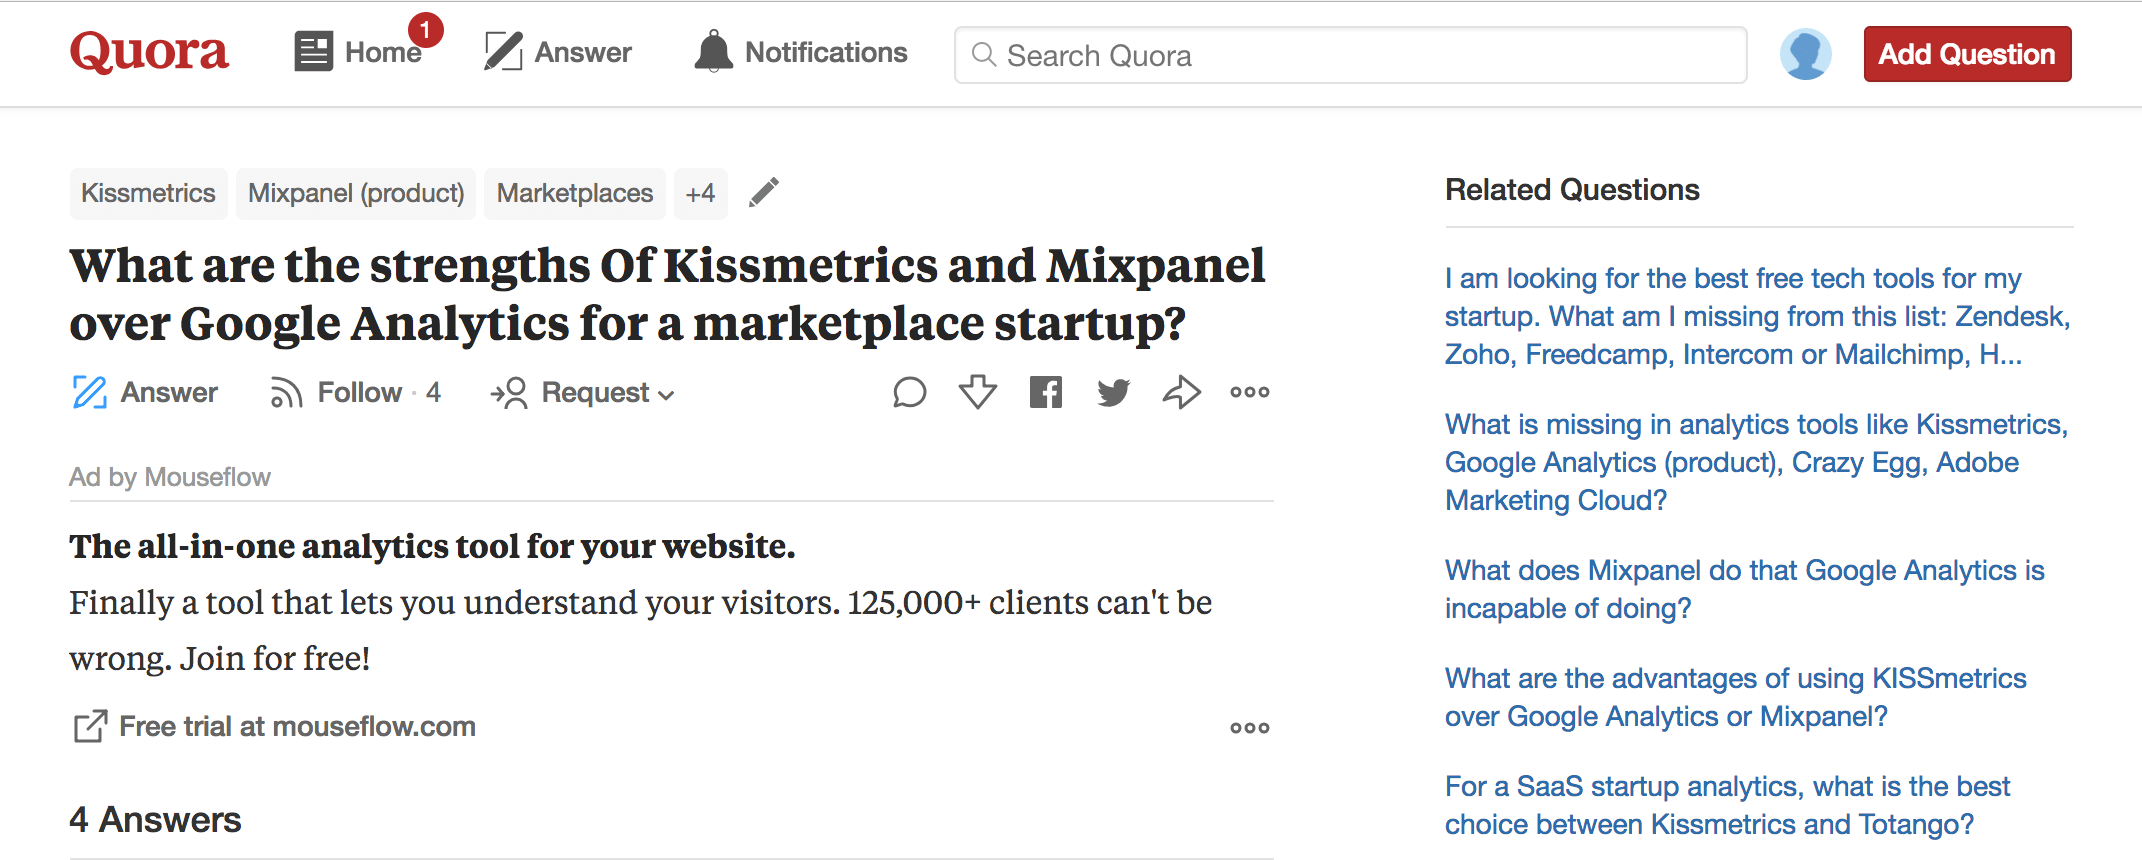 Mouseflow ad on Quora post